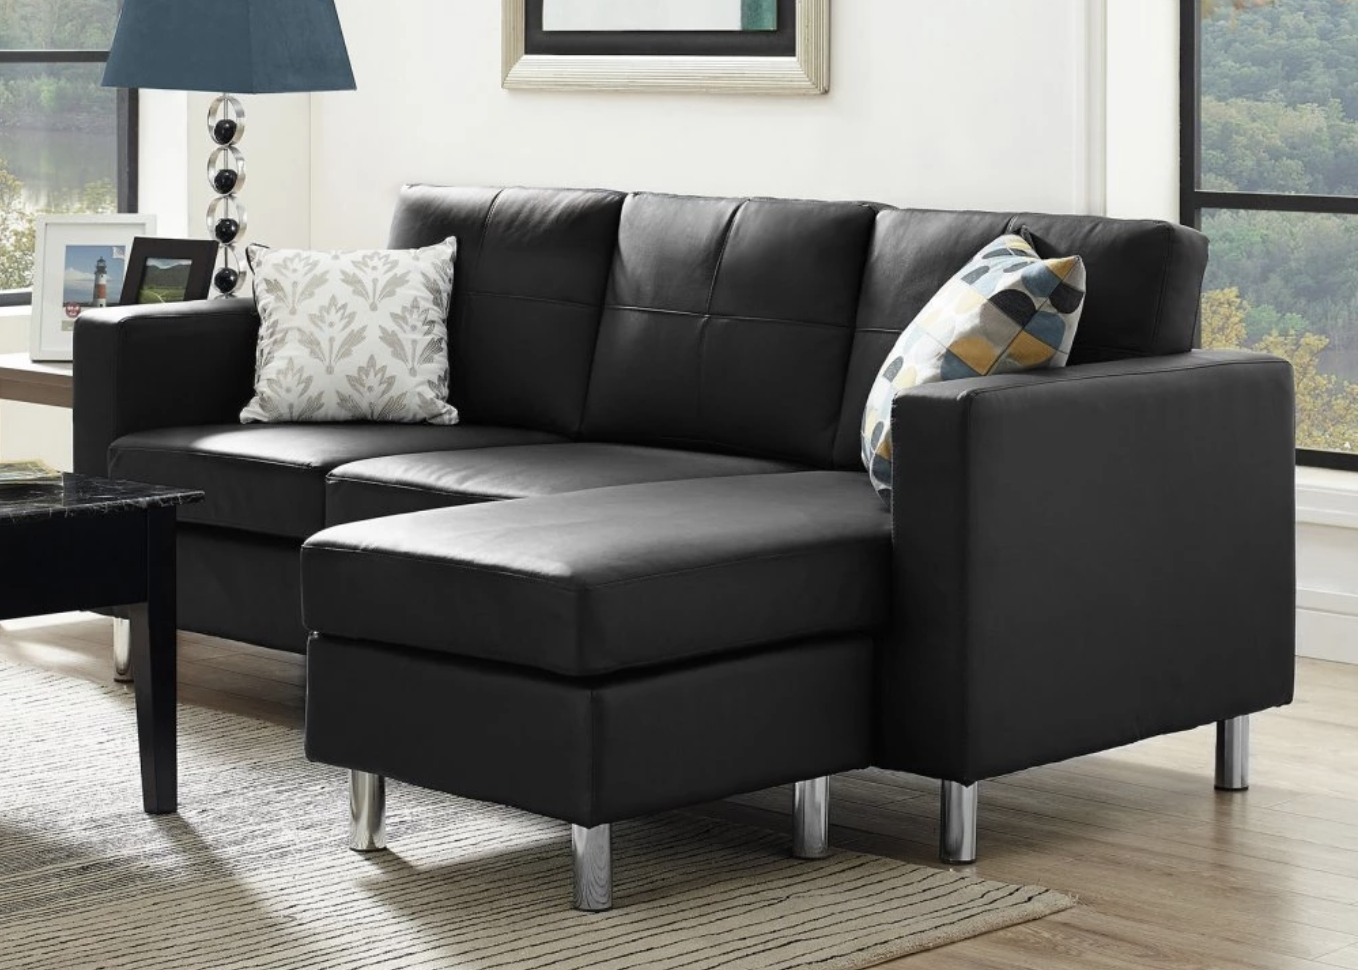 Recent 75 Modern Sectional Sofas For Small Spaces (2018) Intended For 110X90 Sectional Sofas (View 8 of 15)